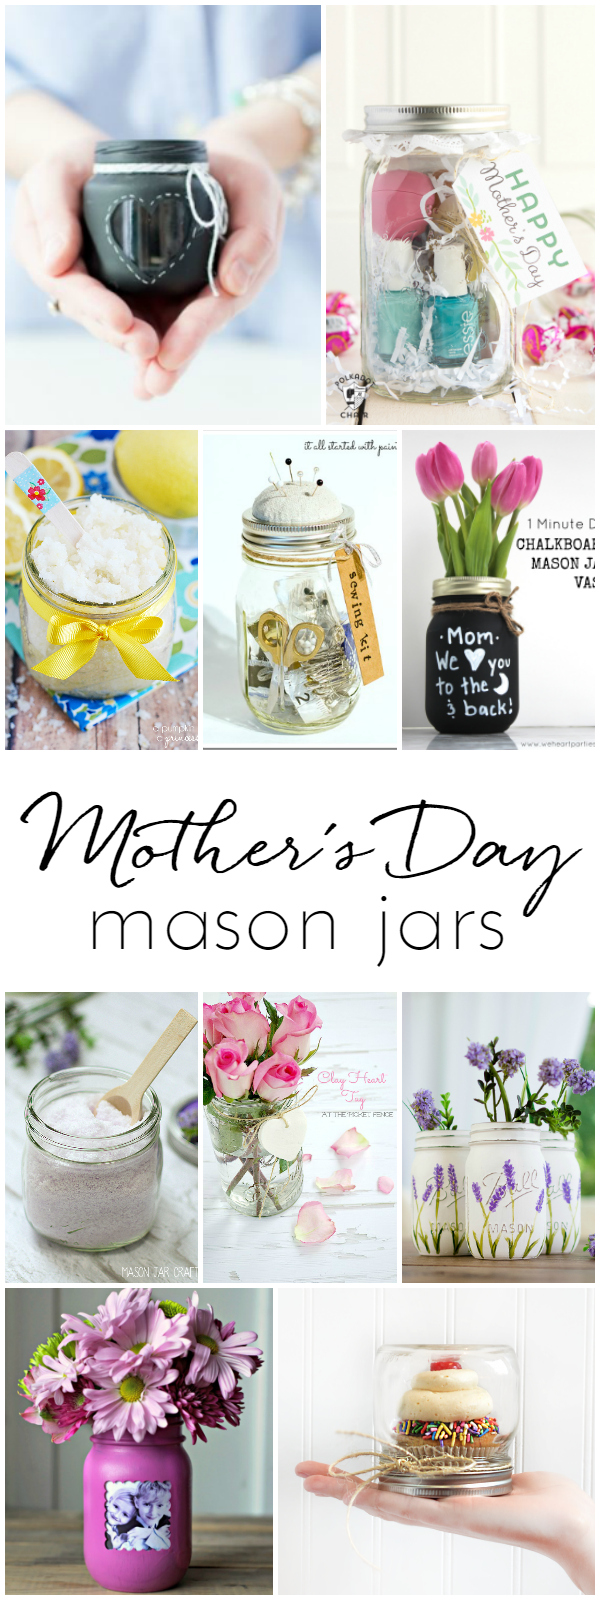 Mother's Day Mason Jar Gift Ideas - Homemade Gift Ideas with Mason Jars @masonjarcraftslove.com